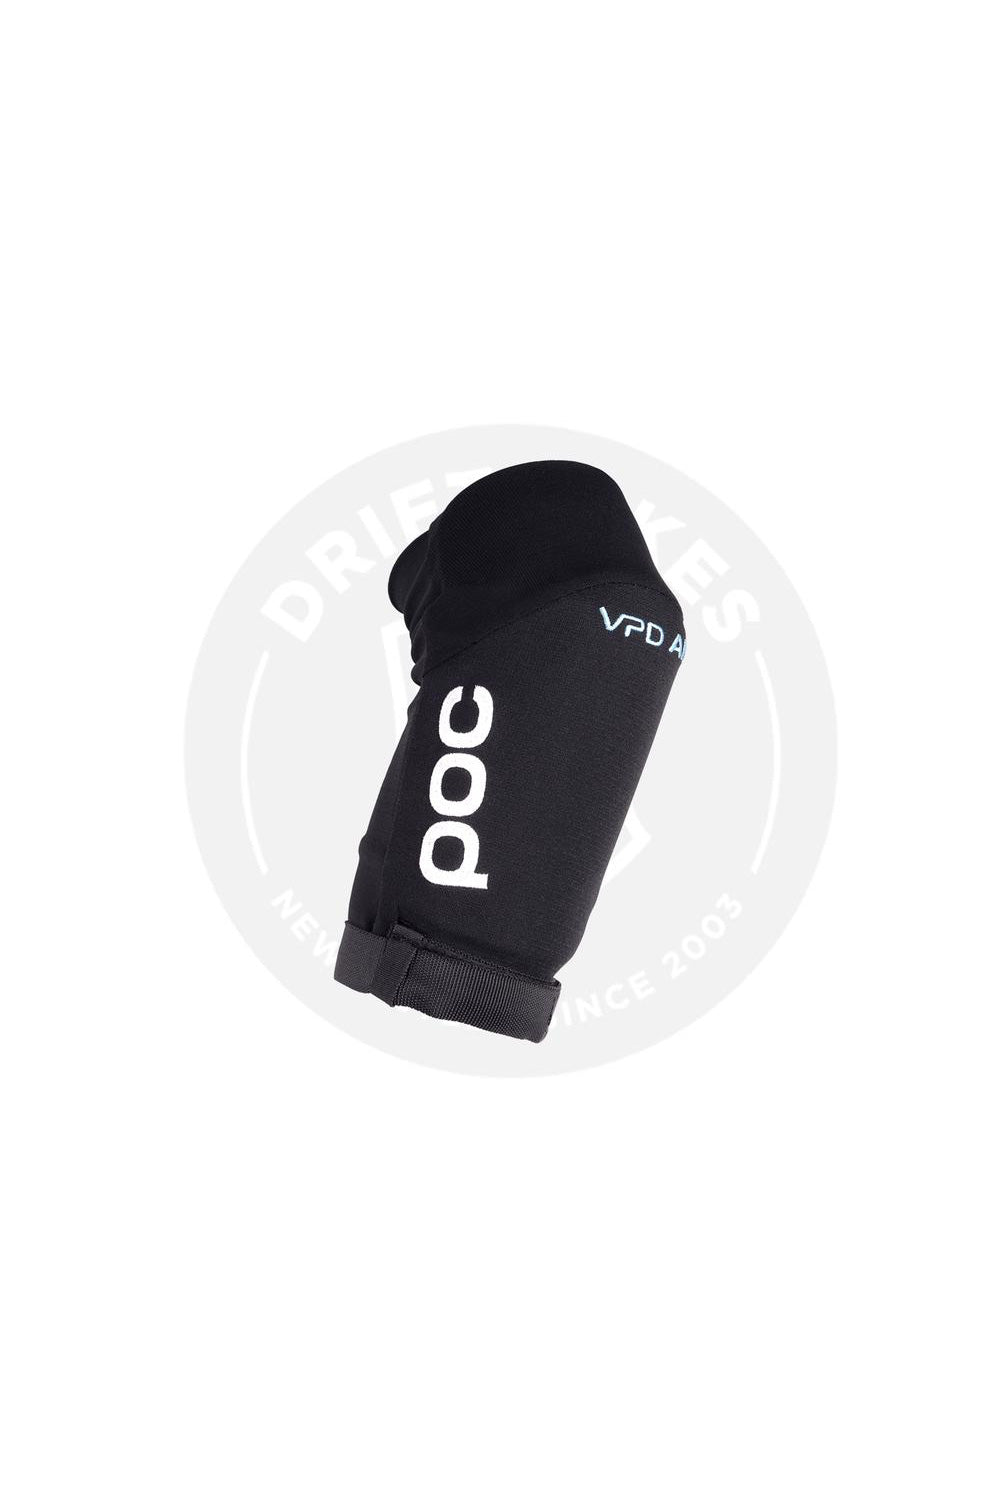 POC Joint VPD Air Elbow Mountain Bike Pads